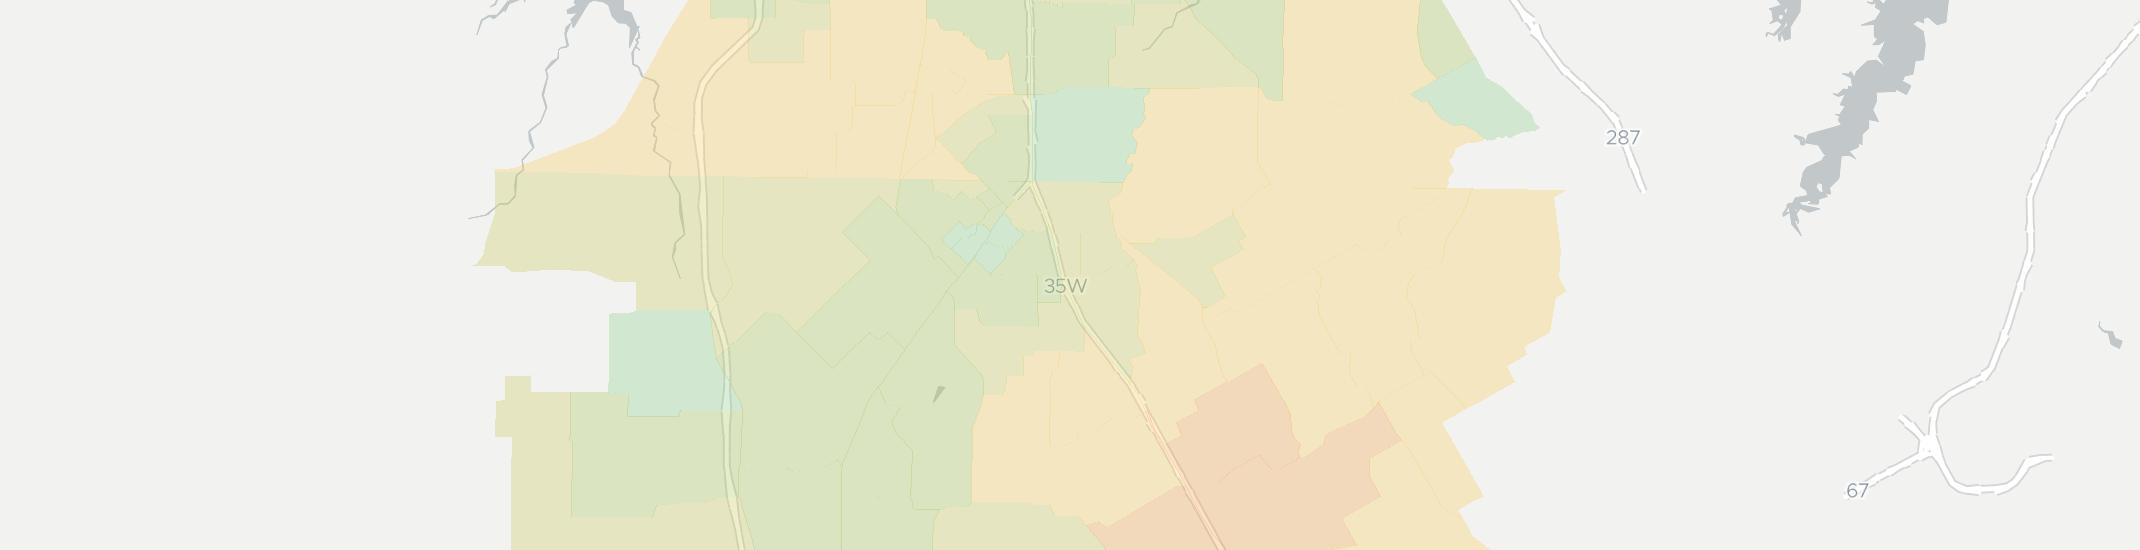 Burleson Tx Zip Code Map.Internet In Burleson See All 25 Internet Providers